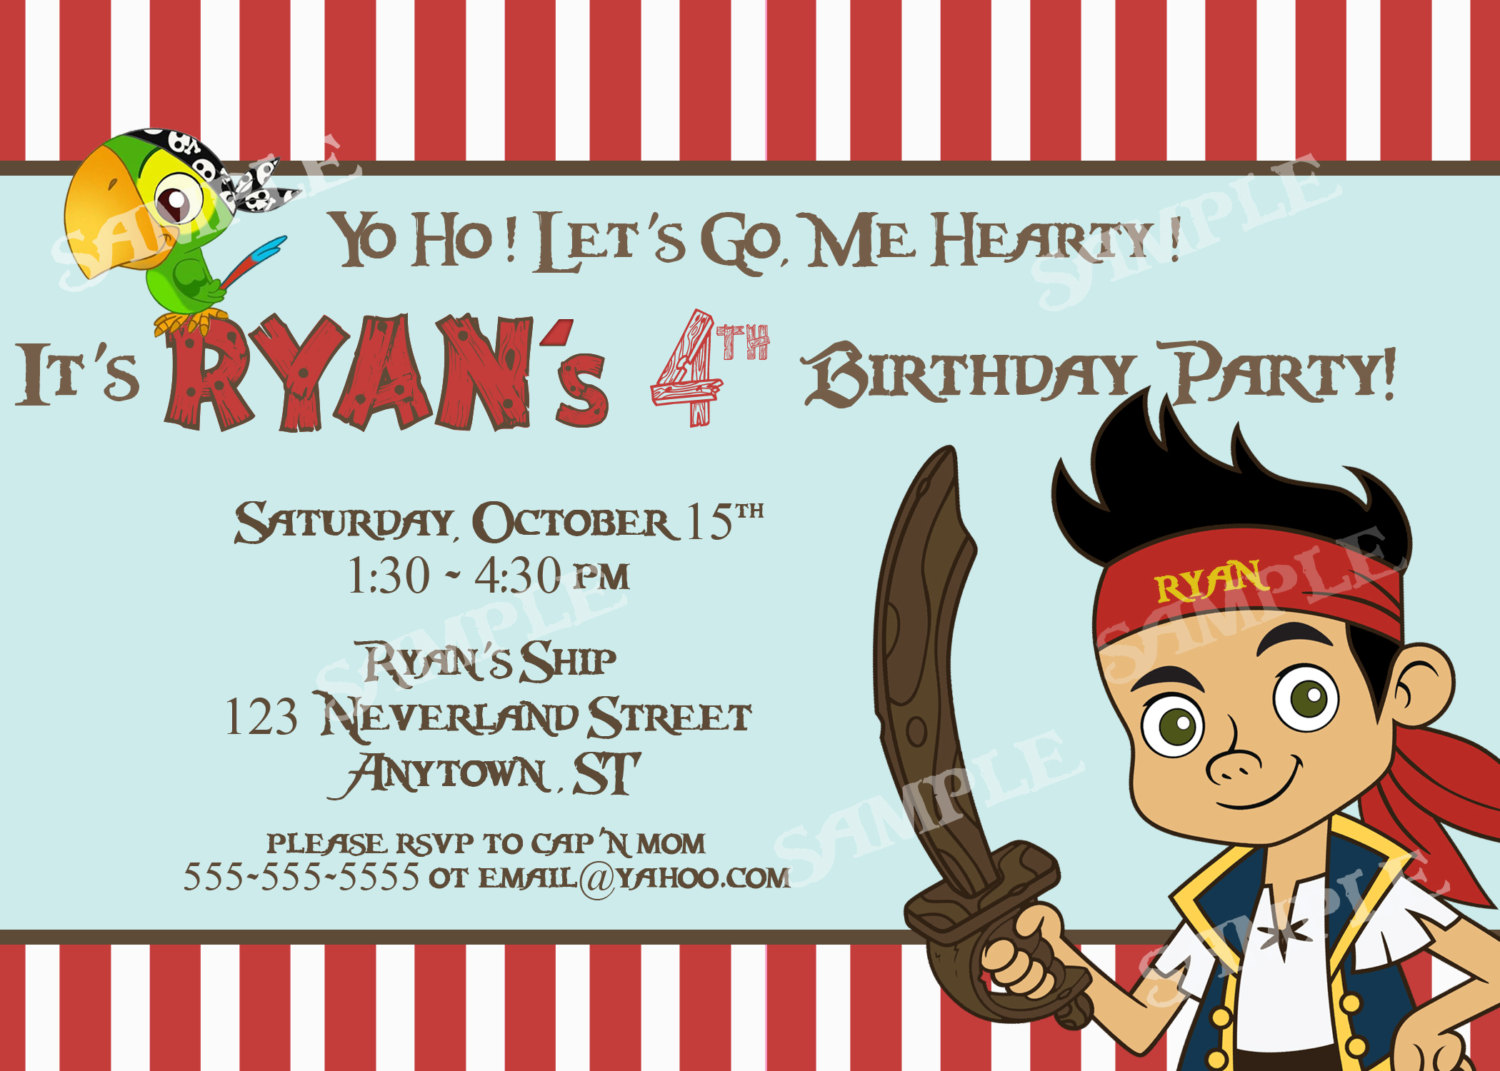 Free jake and the neverland pirates birthday invitations jake and neverland1 filmwisefo Image collections